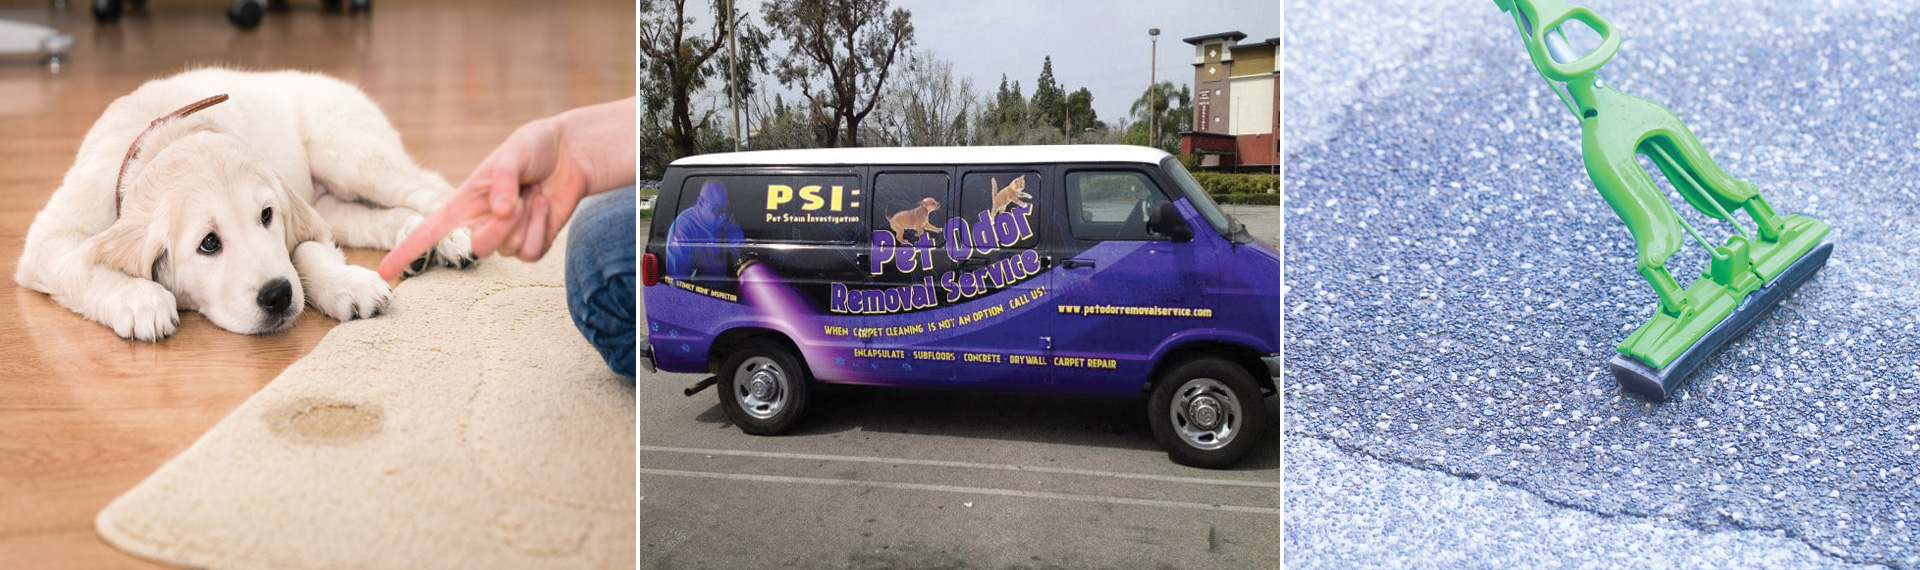 Pet Odor Removal Service Midway City CA